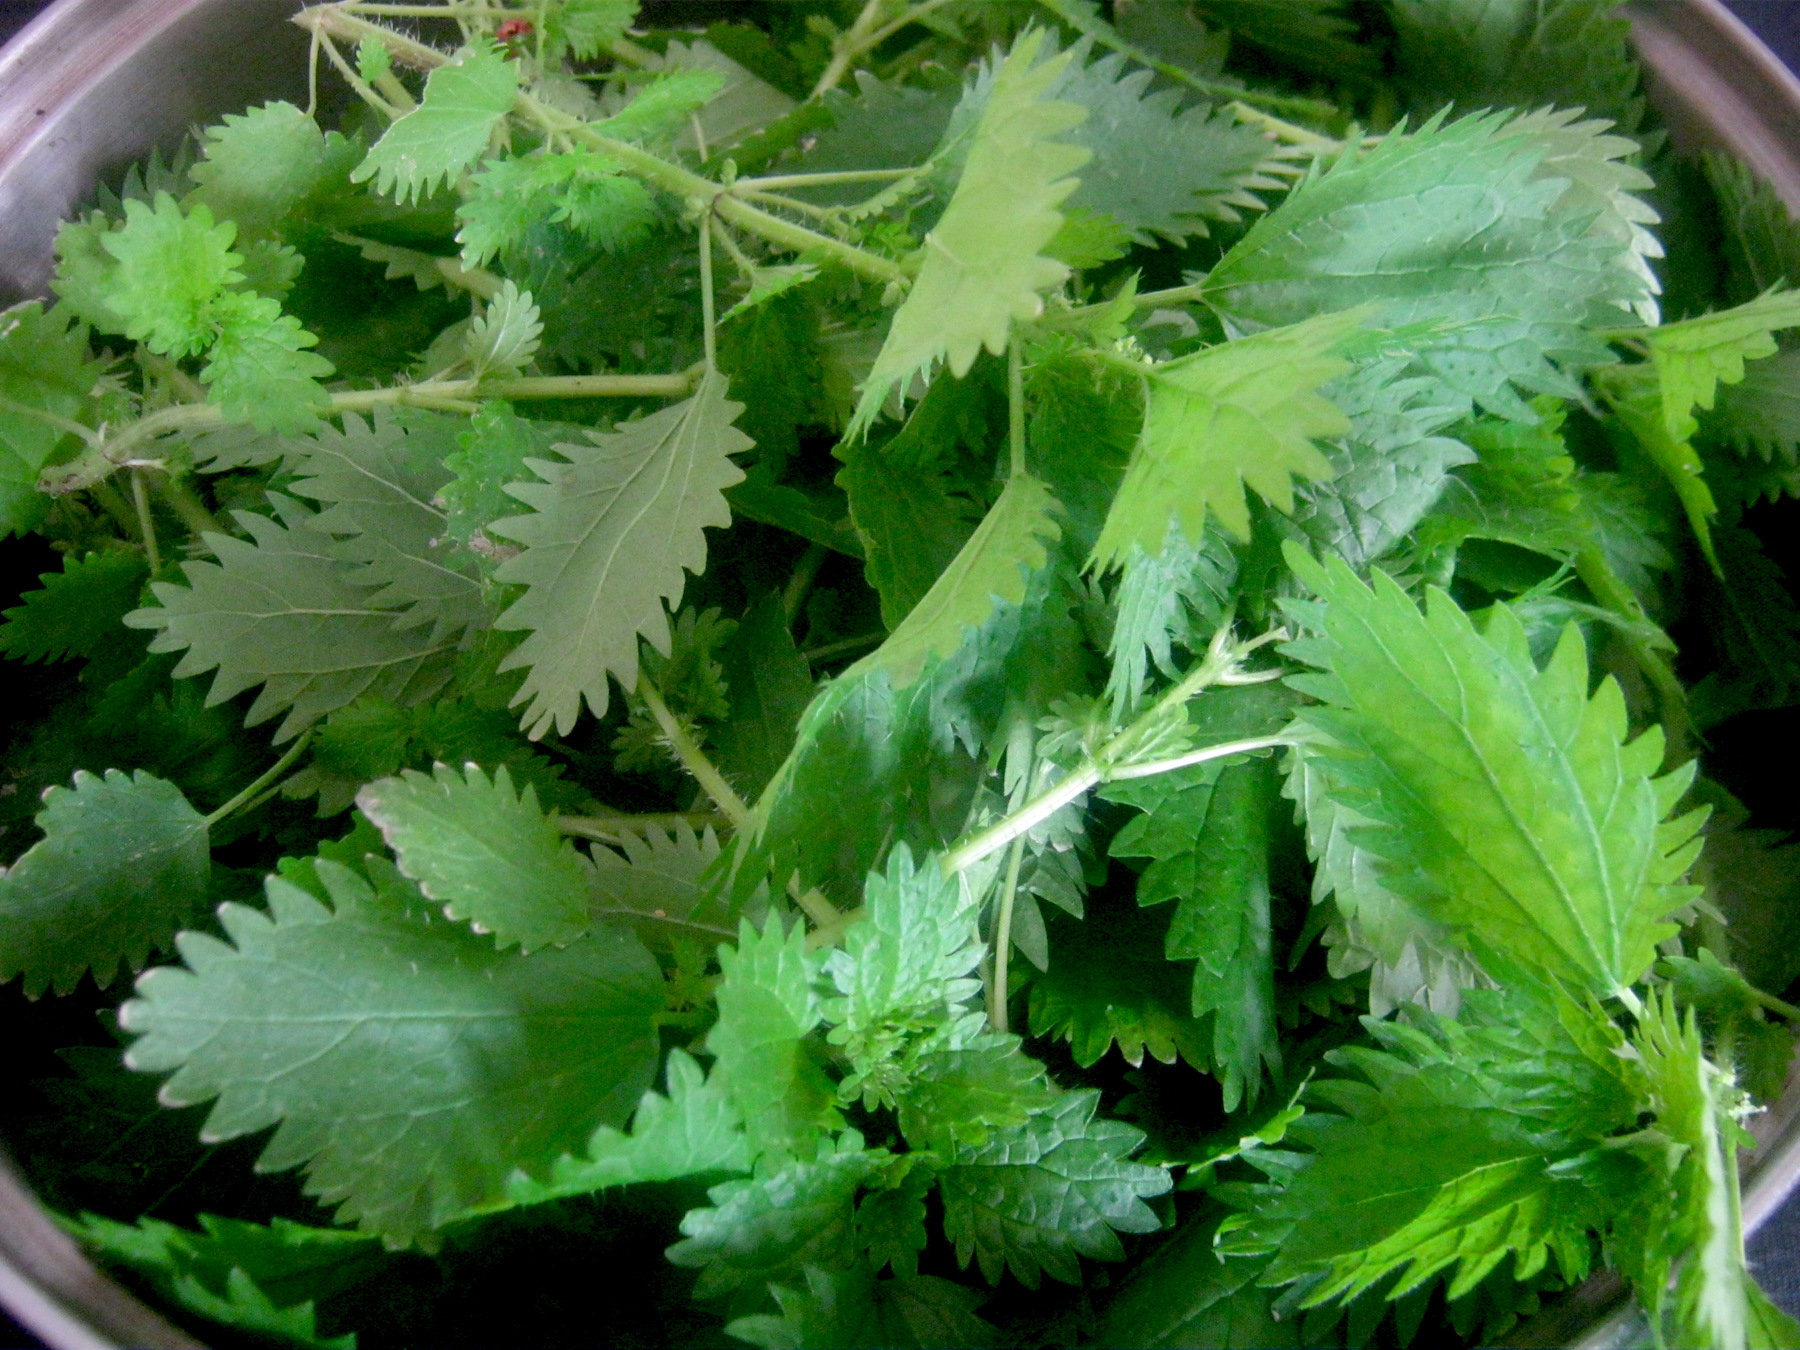 Freshly picked stinging nettle plants in a pot